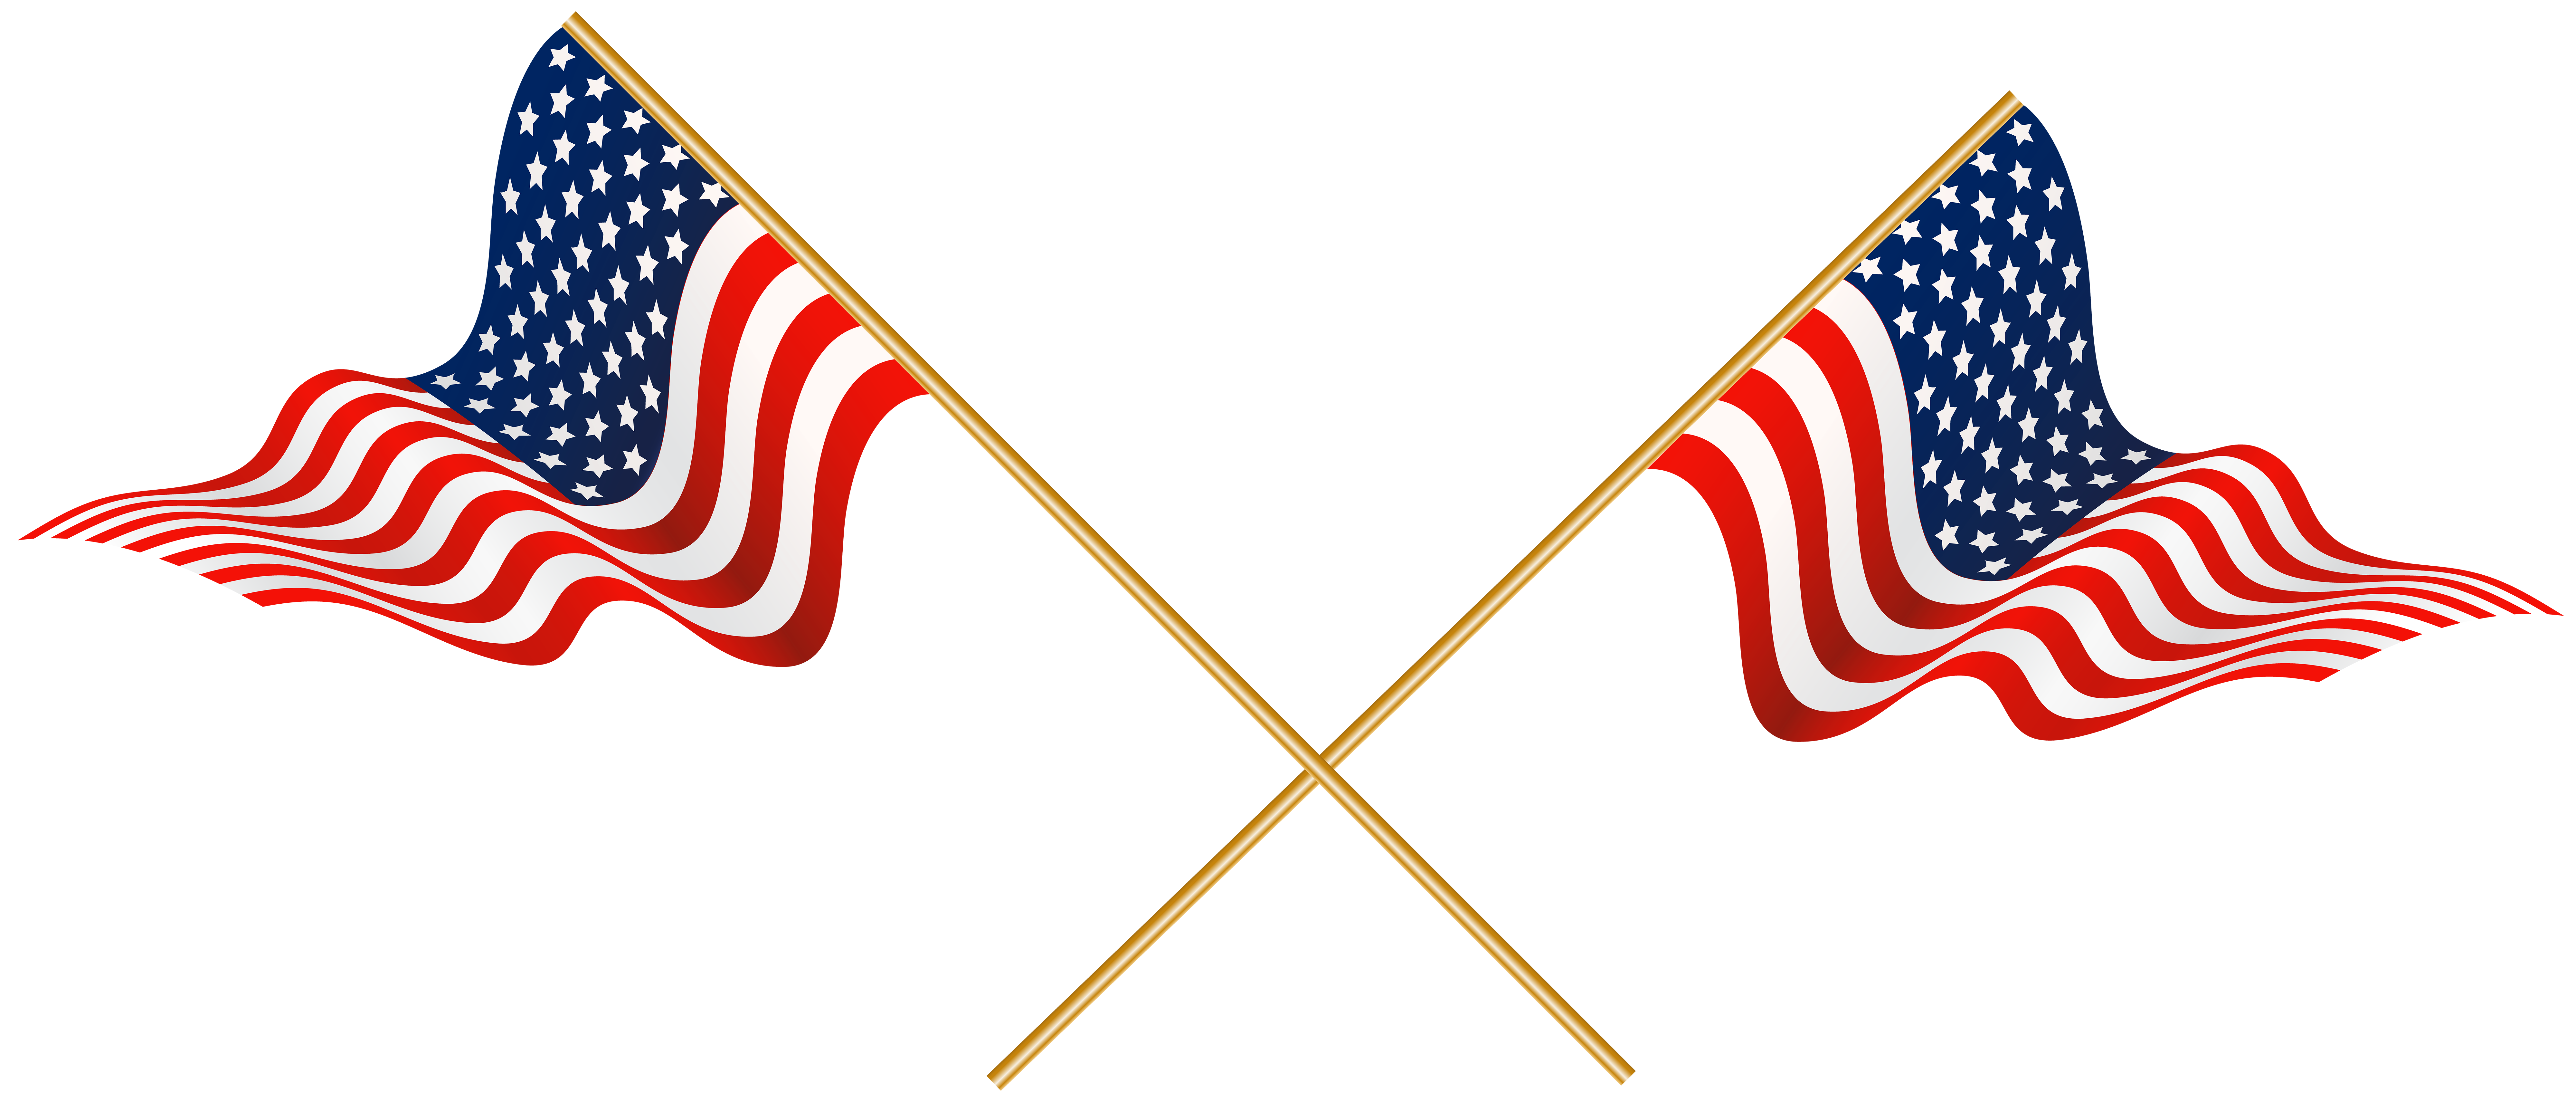 8000x3421 Usa Crossed Flags Transparent Png Clip Artu200b Gallery Yopriceville